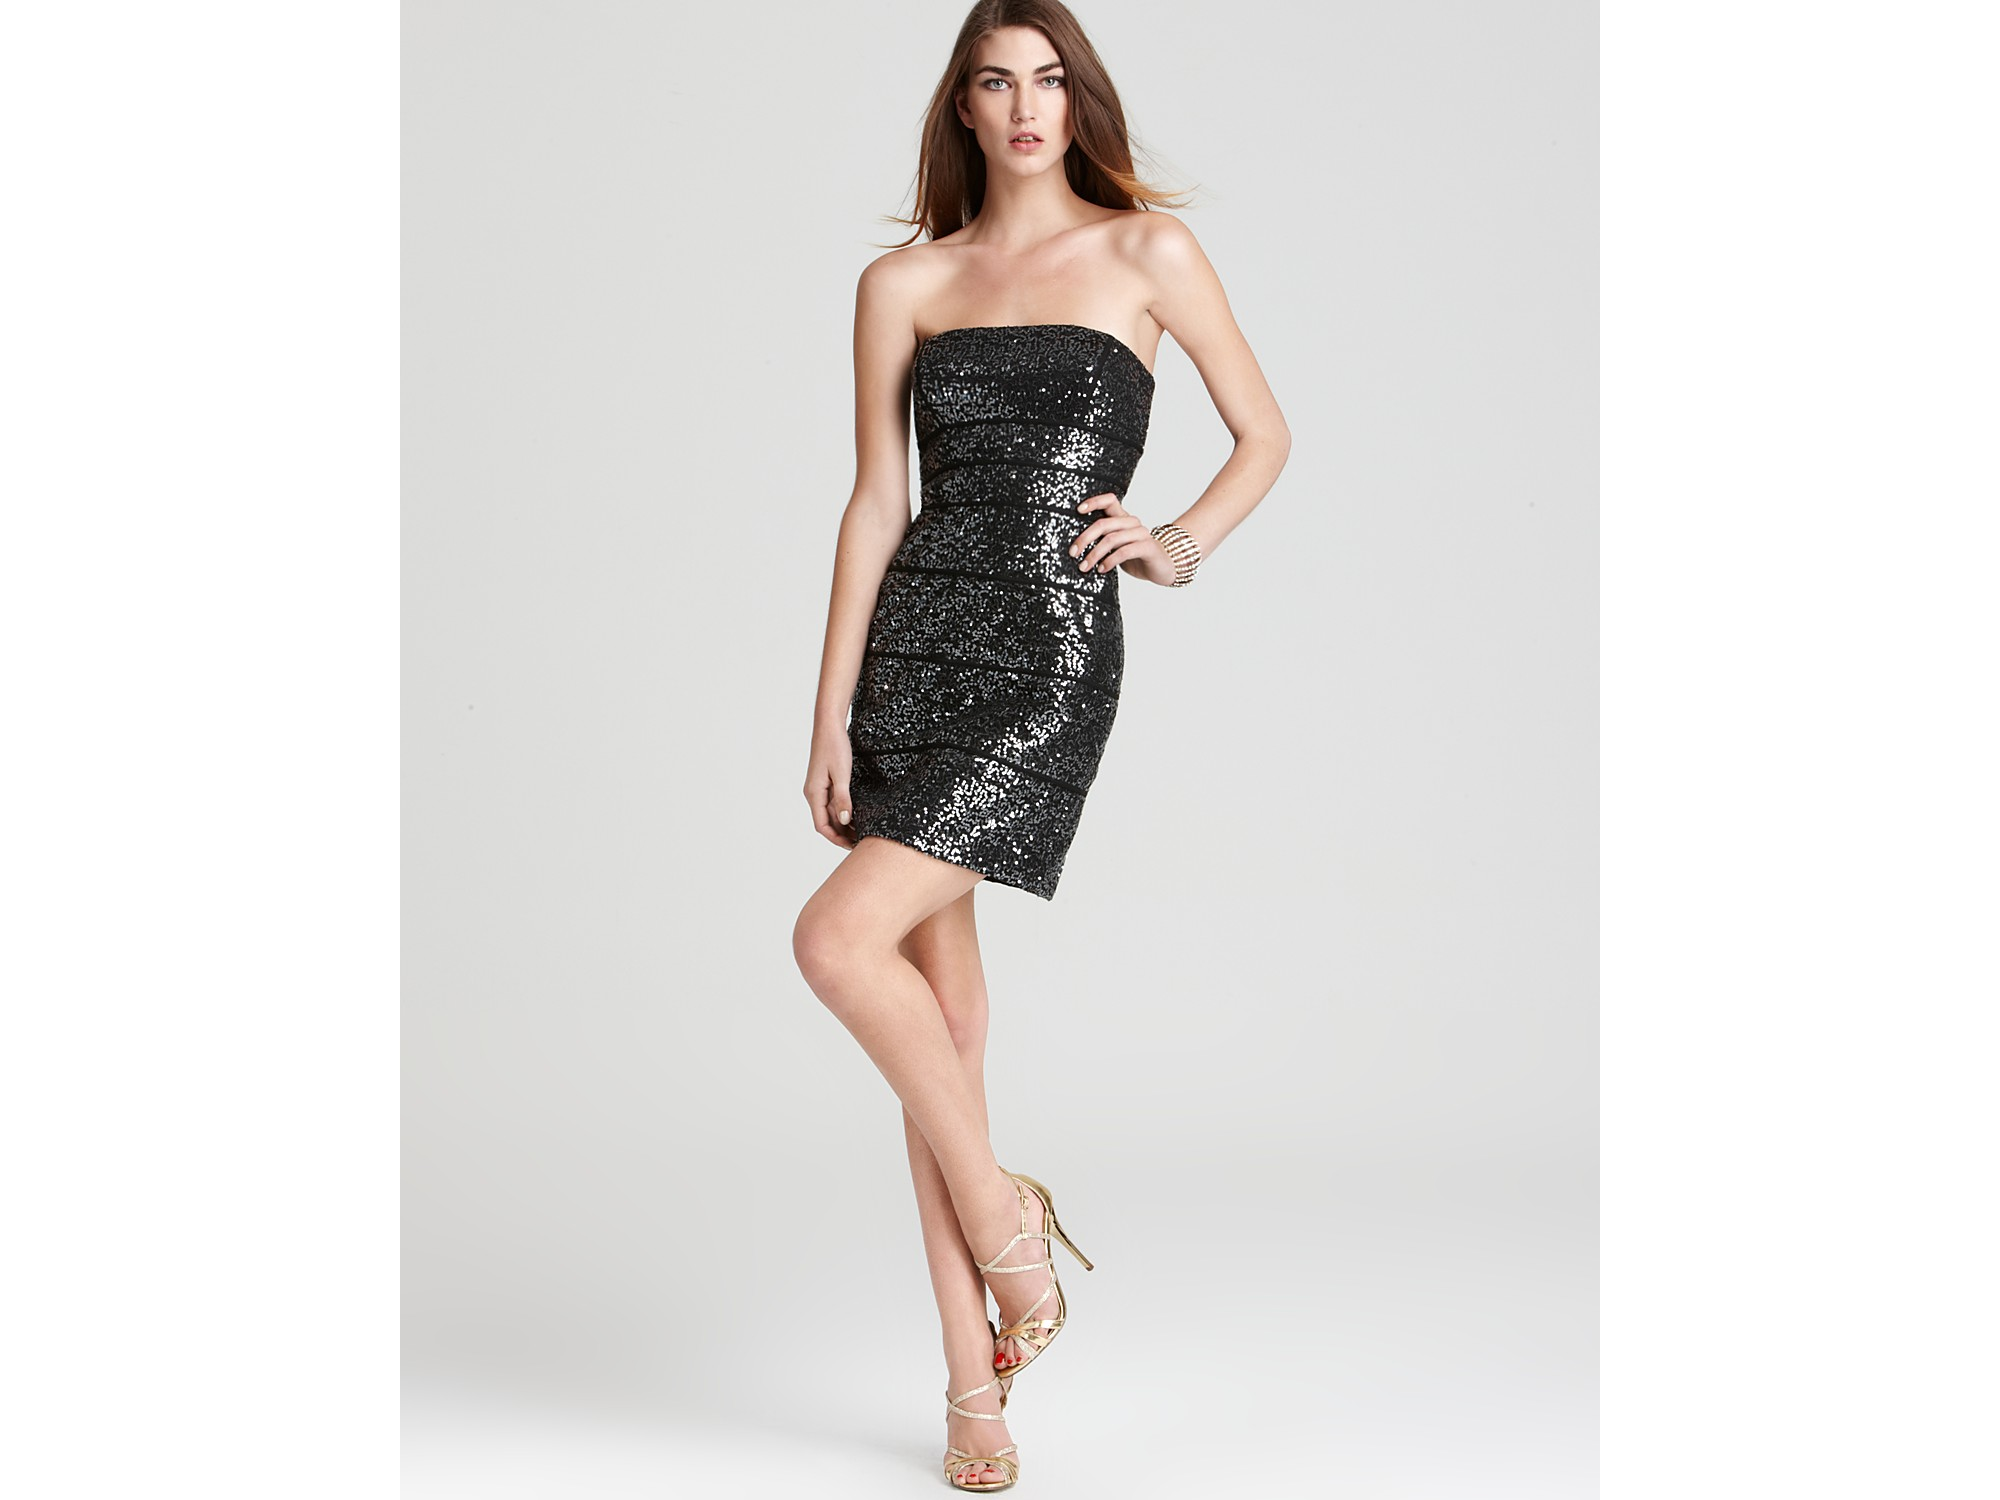 Max & cleo Dress Strapless Sequin Dress in Black | Lyst